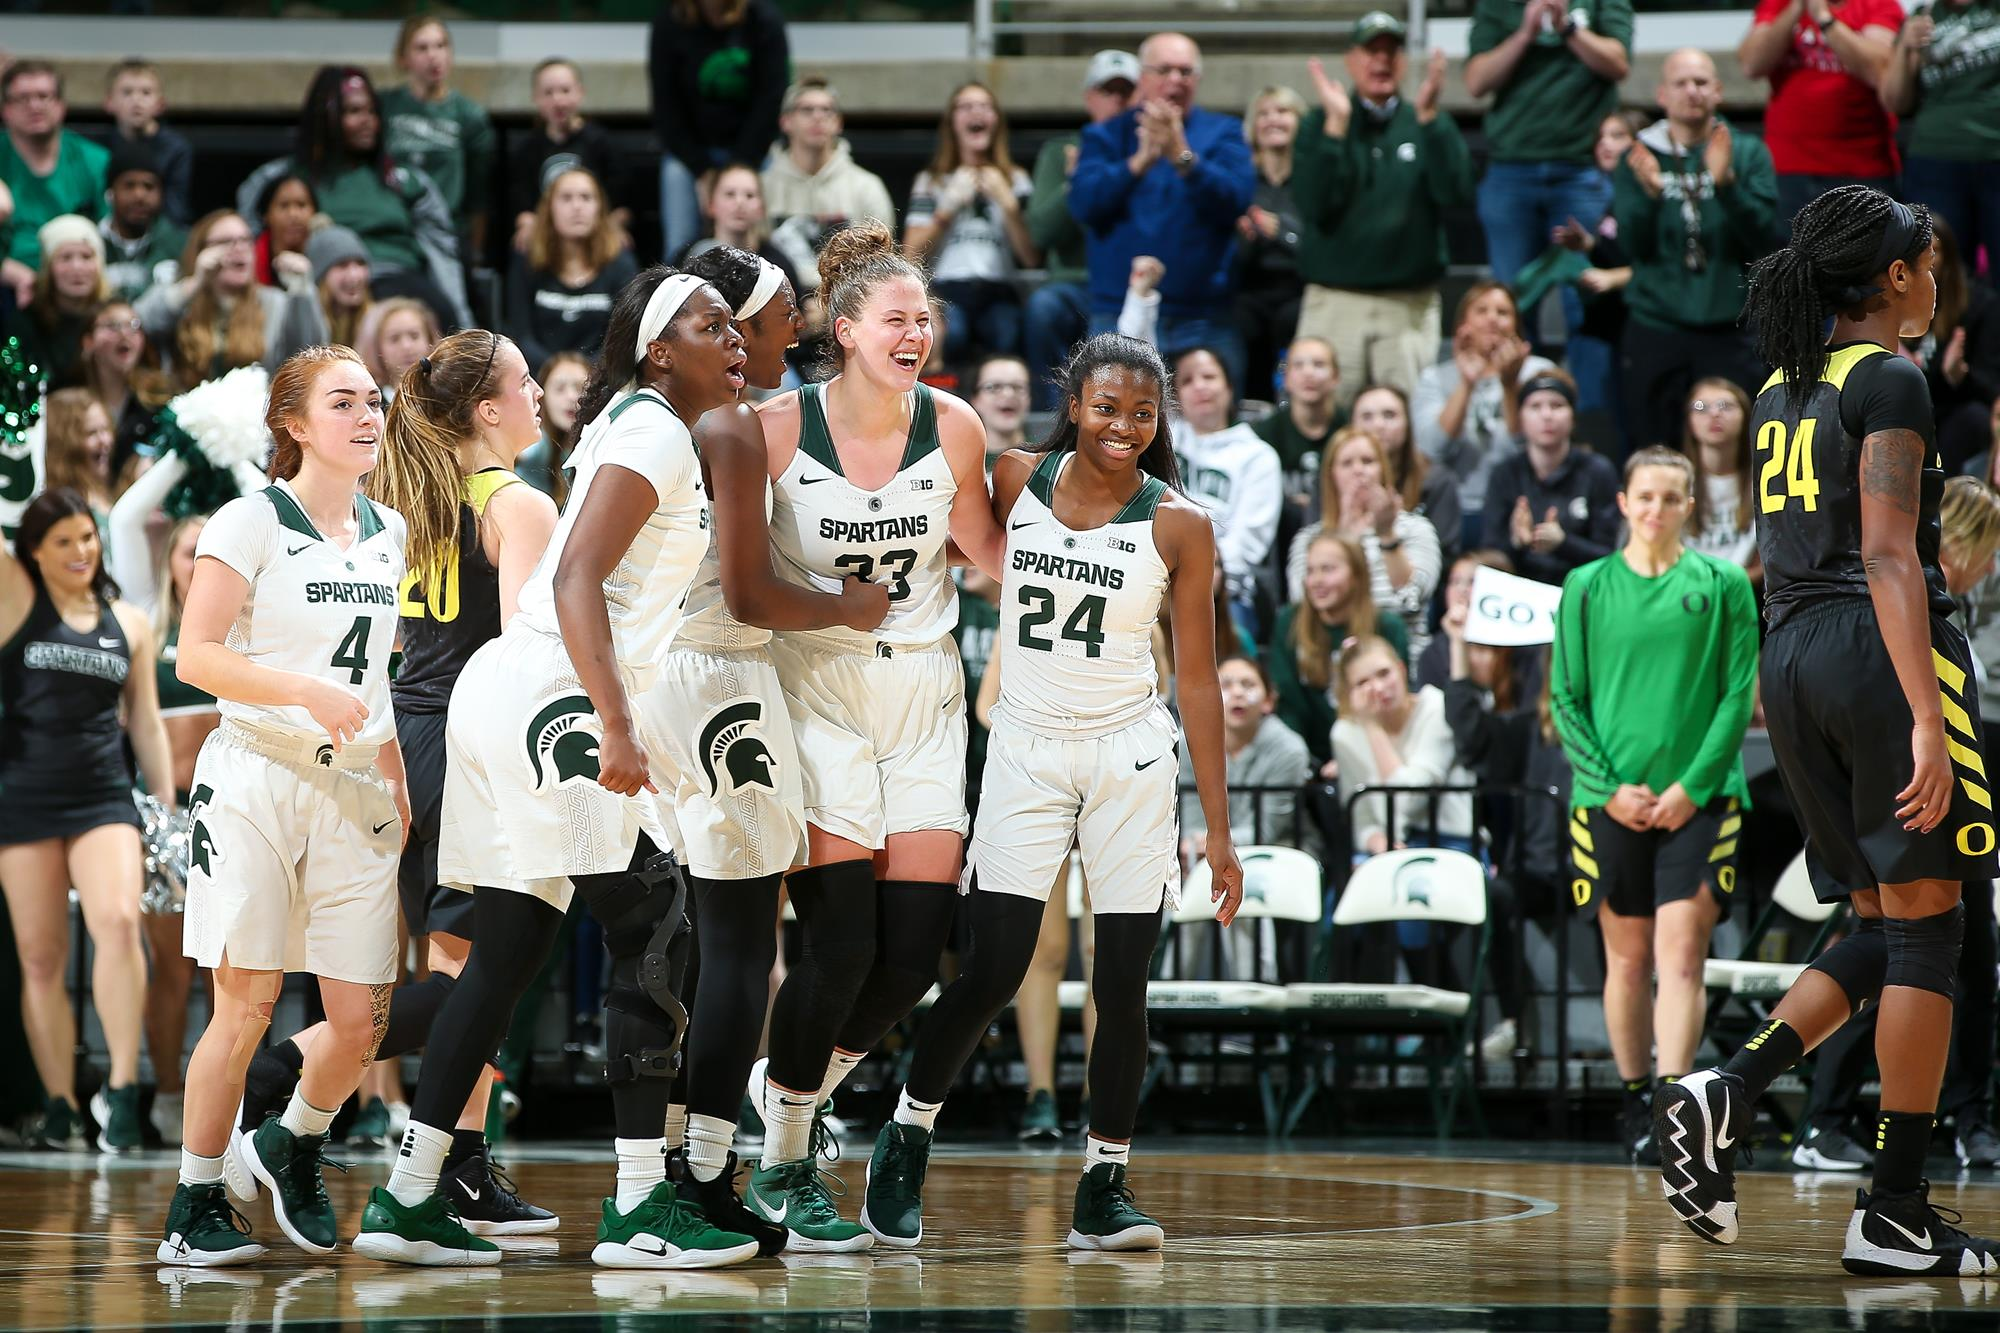 Michigan State enters the Sport Tours International/Hoopfeed NCAA DI Top 25 Poll; UConn remains No. 1